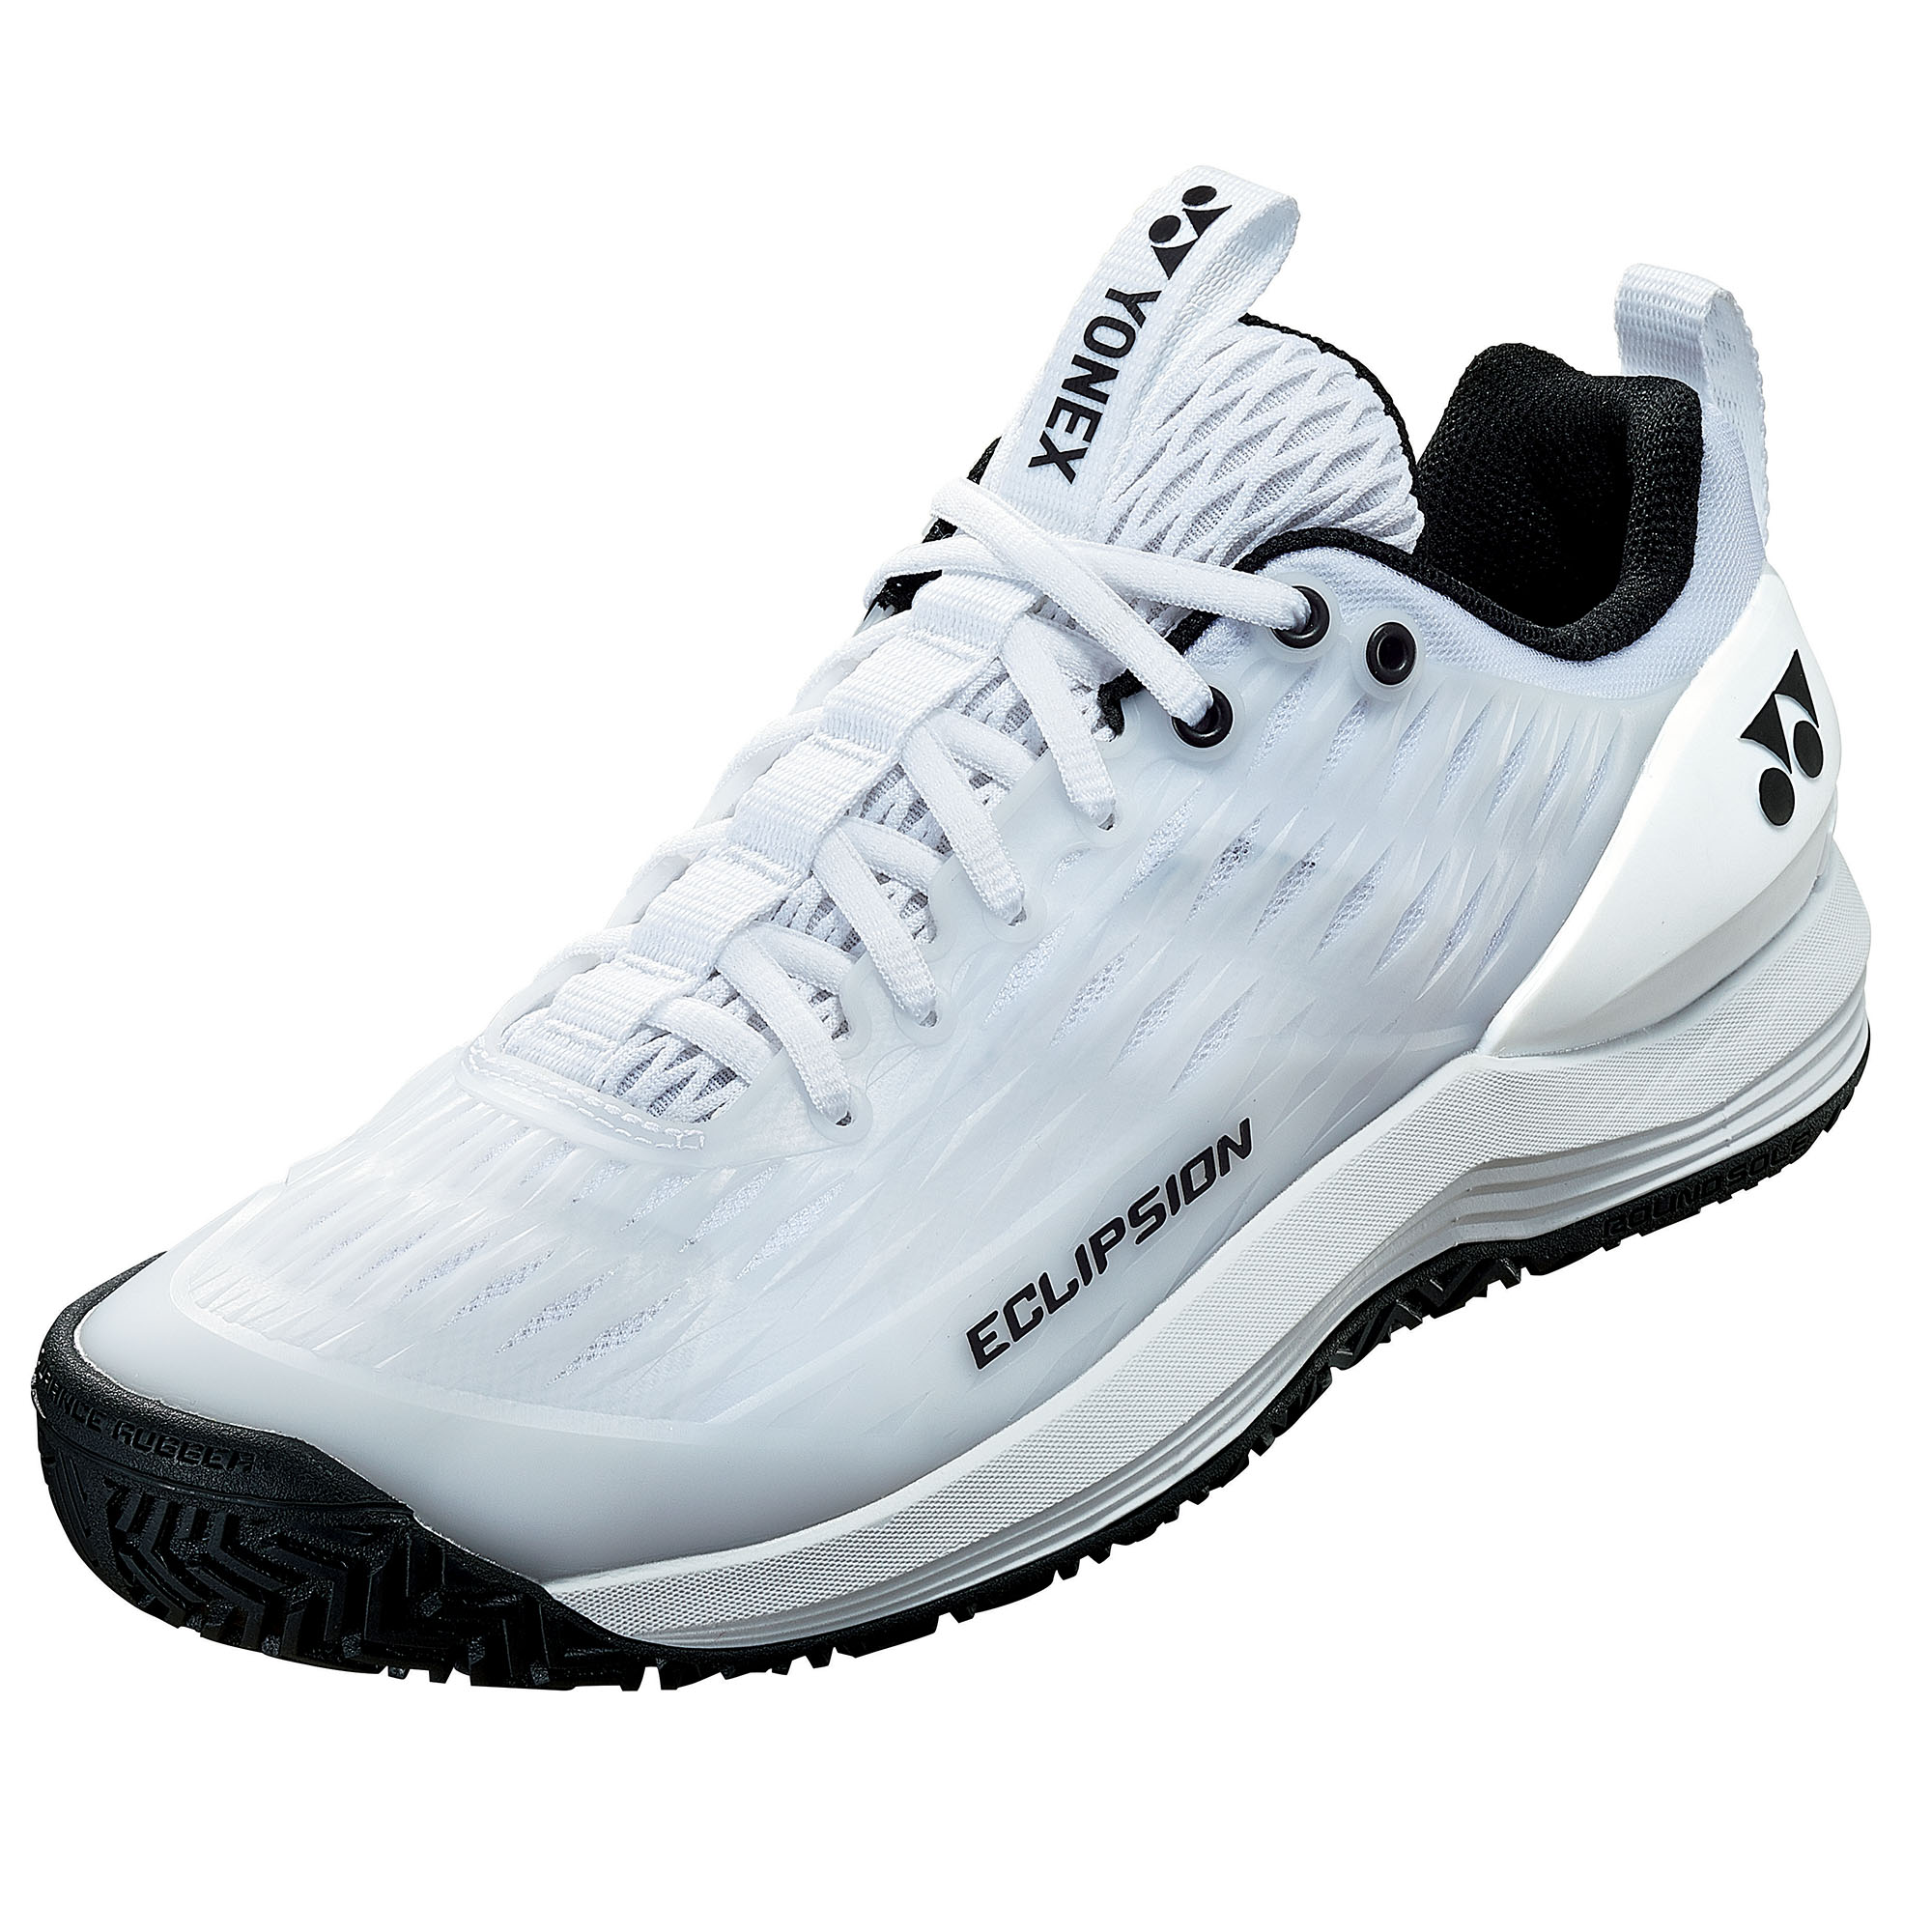 Yonex Power Cushion Eclipsion 3 Mens Tennis Shoes - White, 9 UK